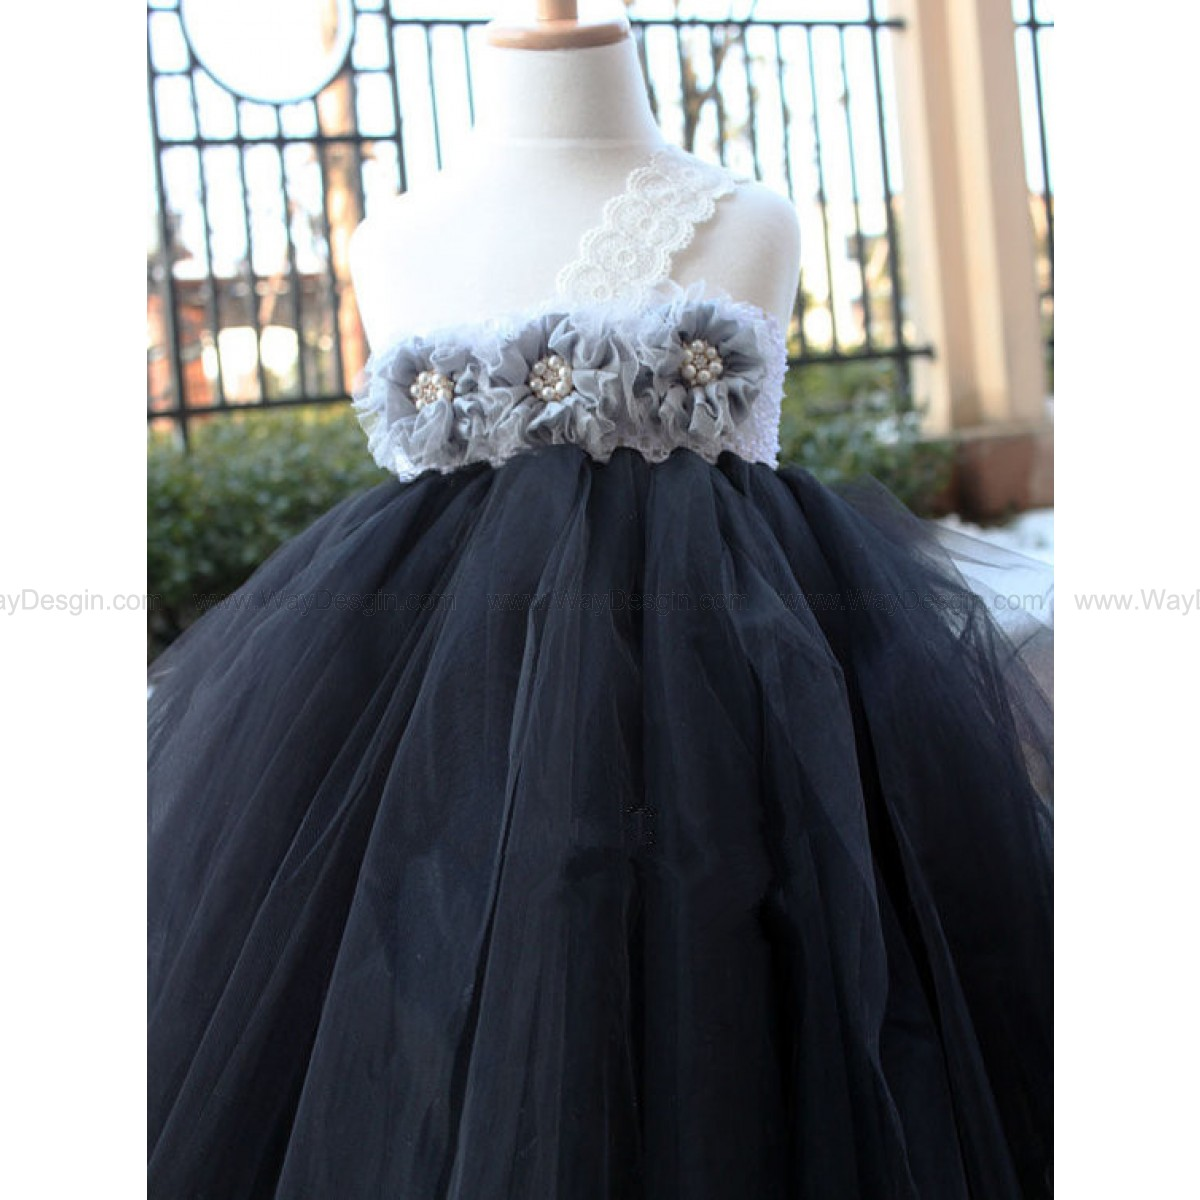 Find great deals on eBay for black tutu dress toddler. Shop with confidence.